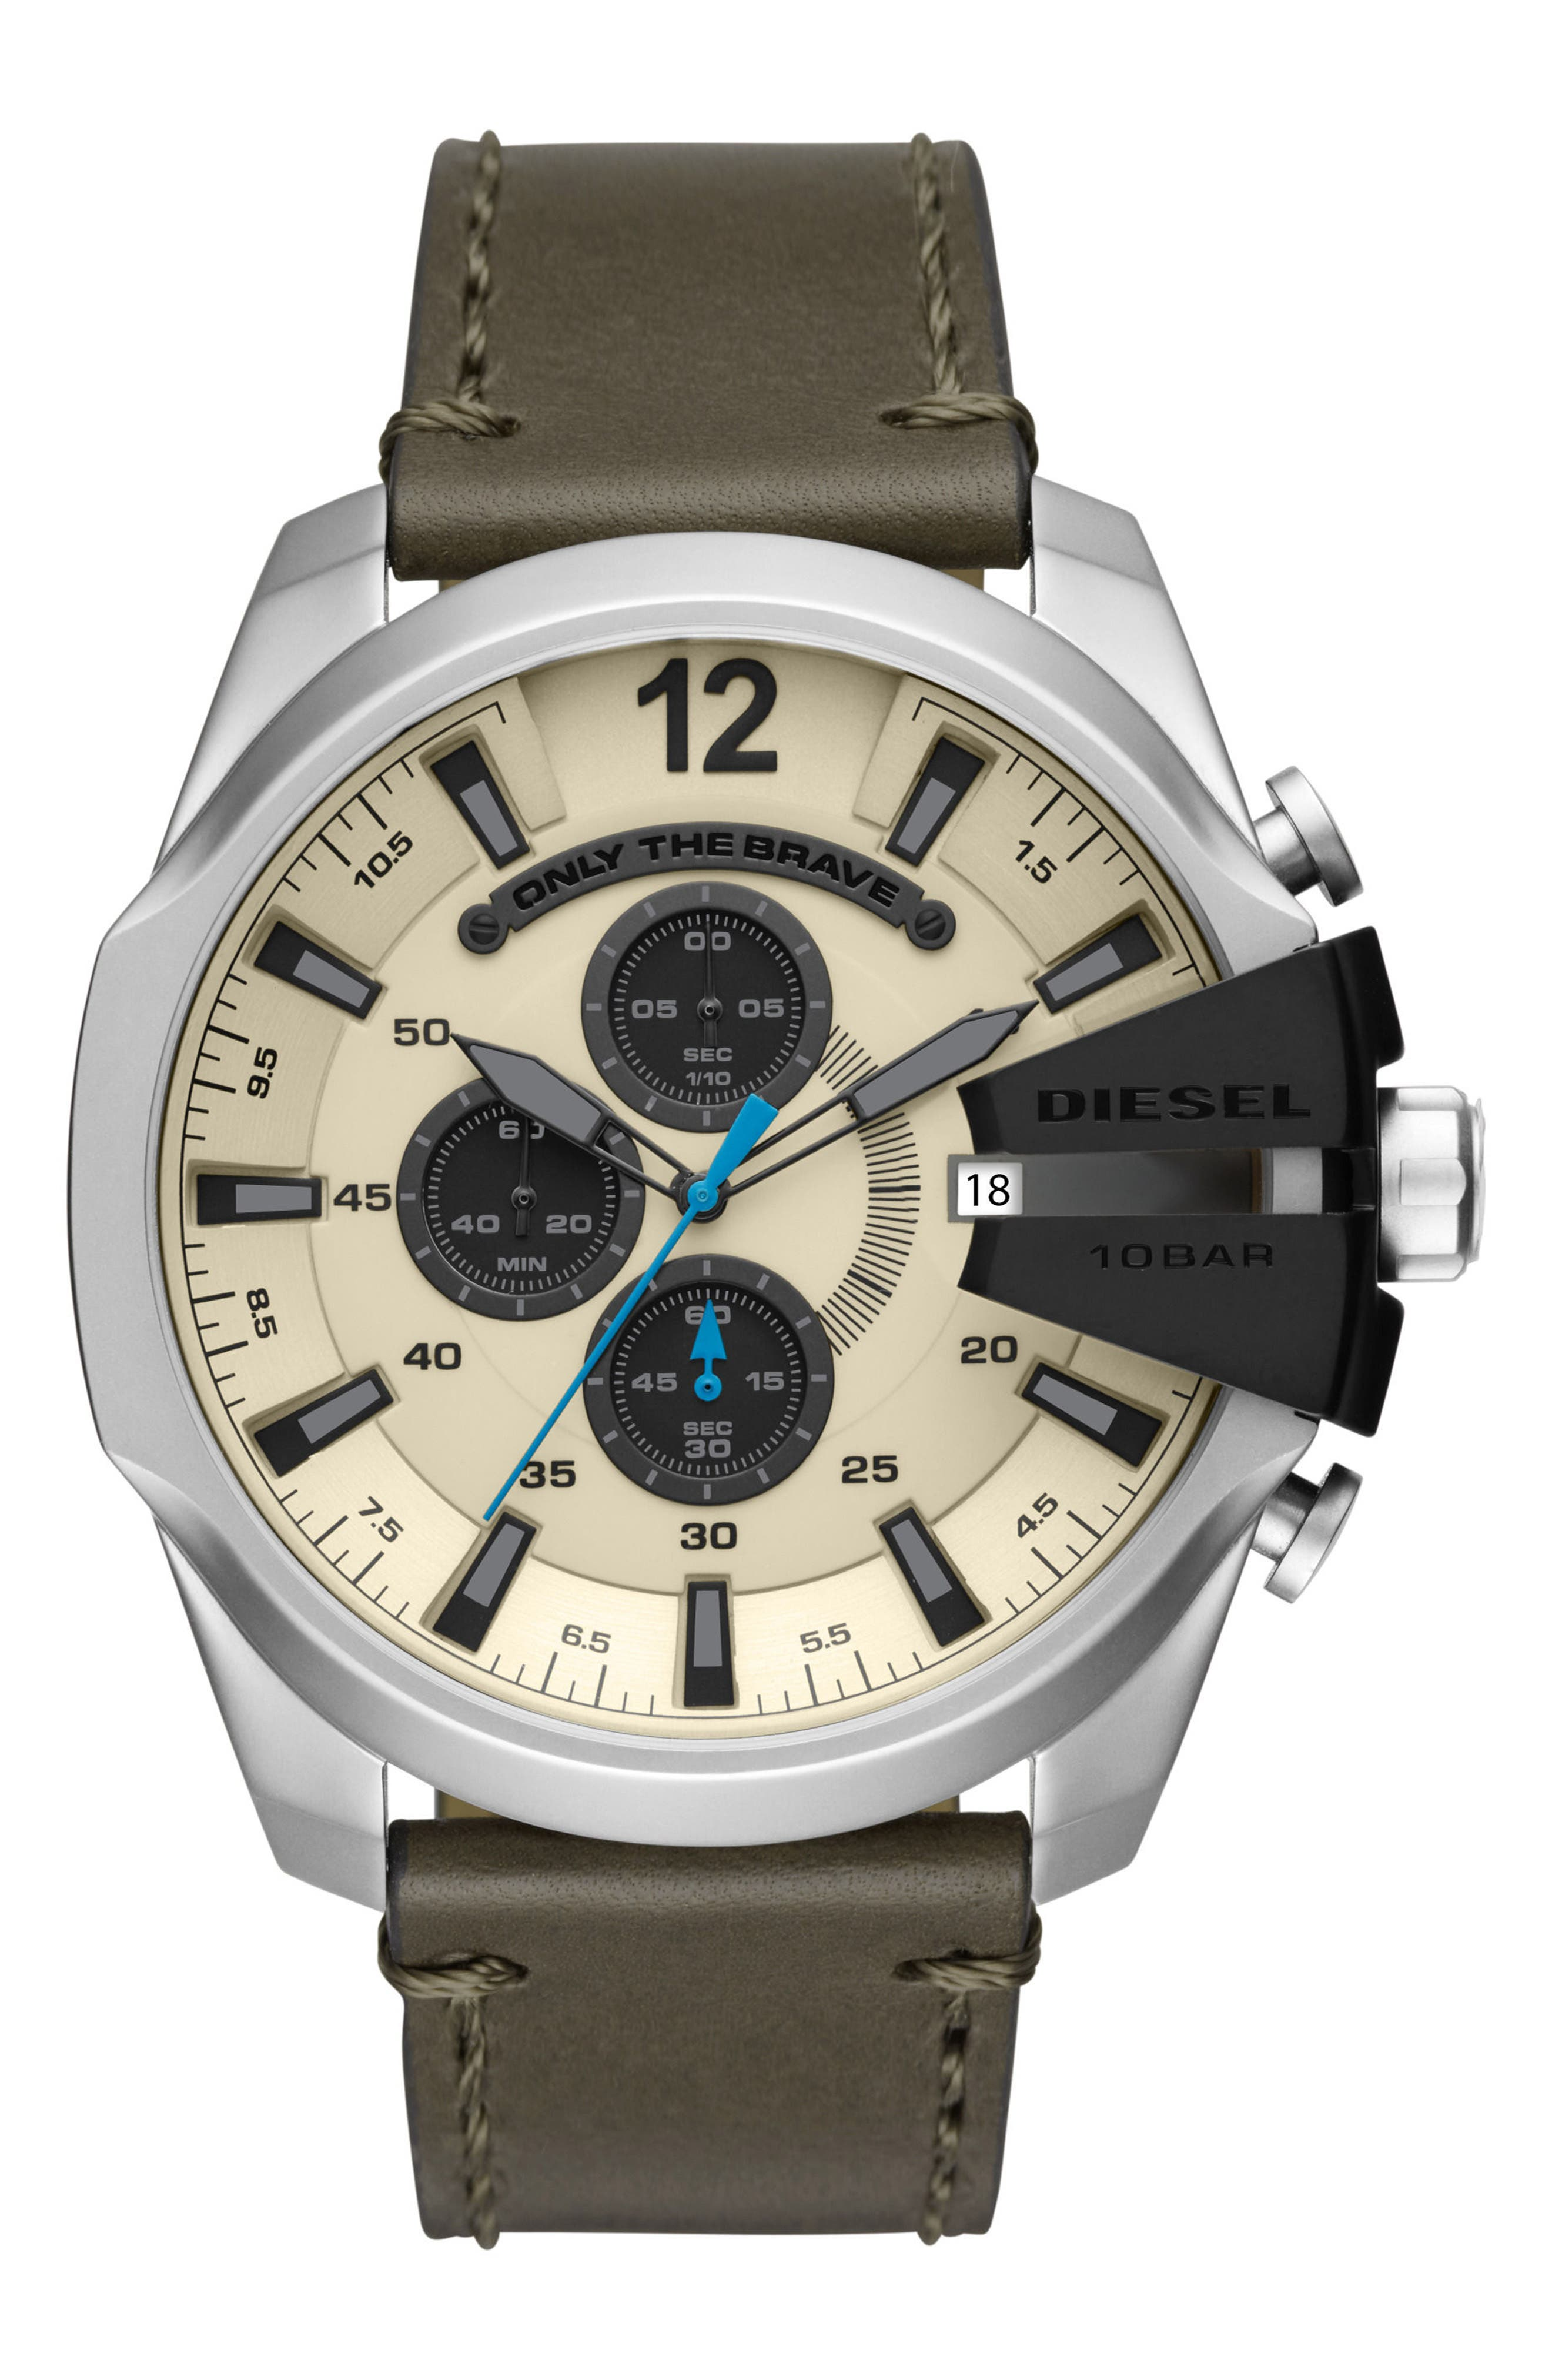 Main Image - DIESEL® Mega Chief Chronograph Leather Strap Watch, 51mm x 59mm